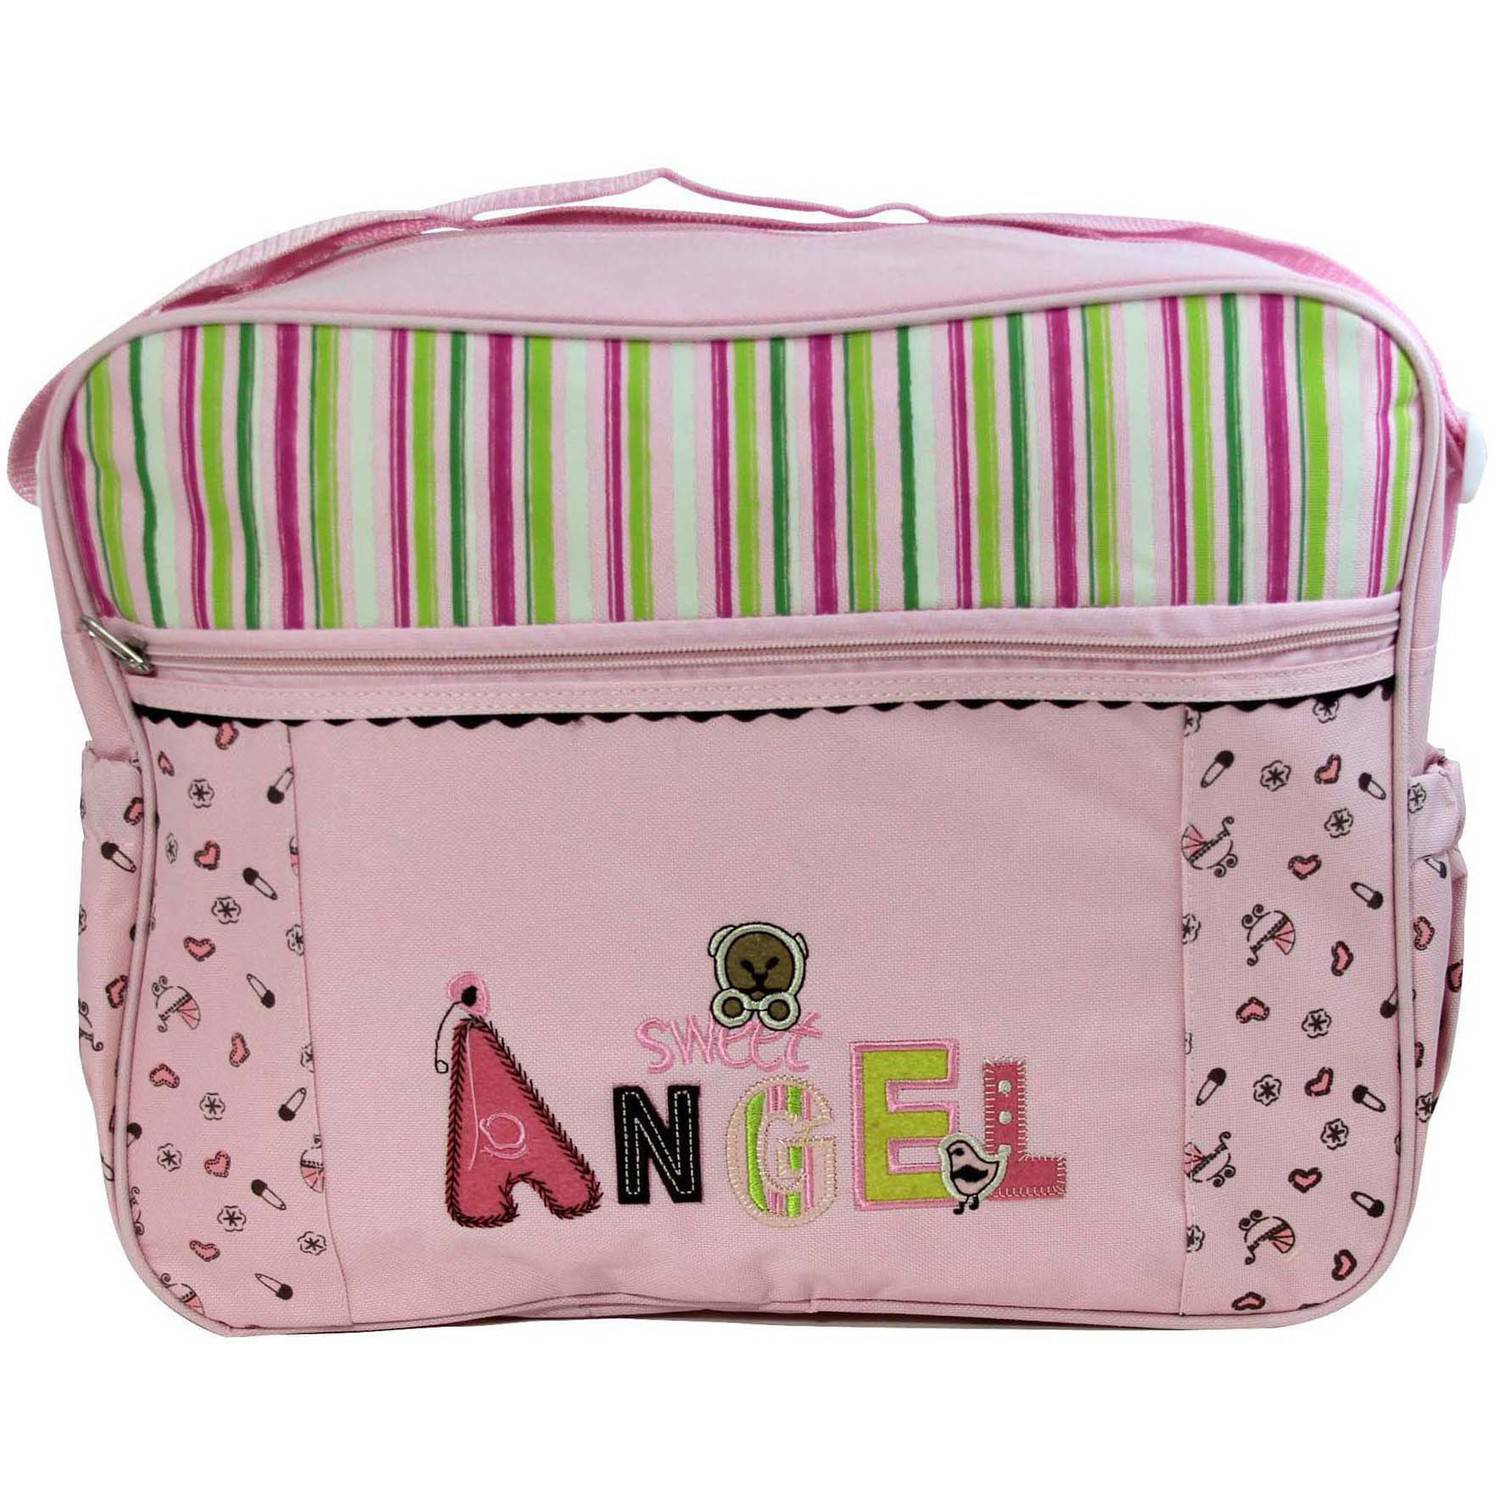 Baby Ziggles Heavy-Duty Diaper Bag, Pink